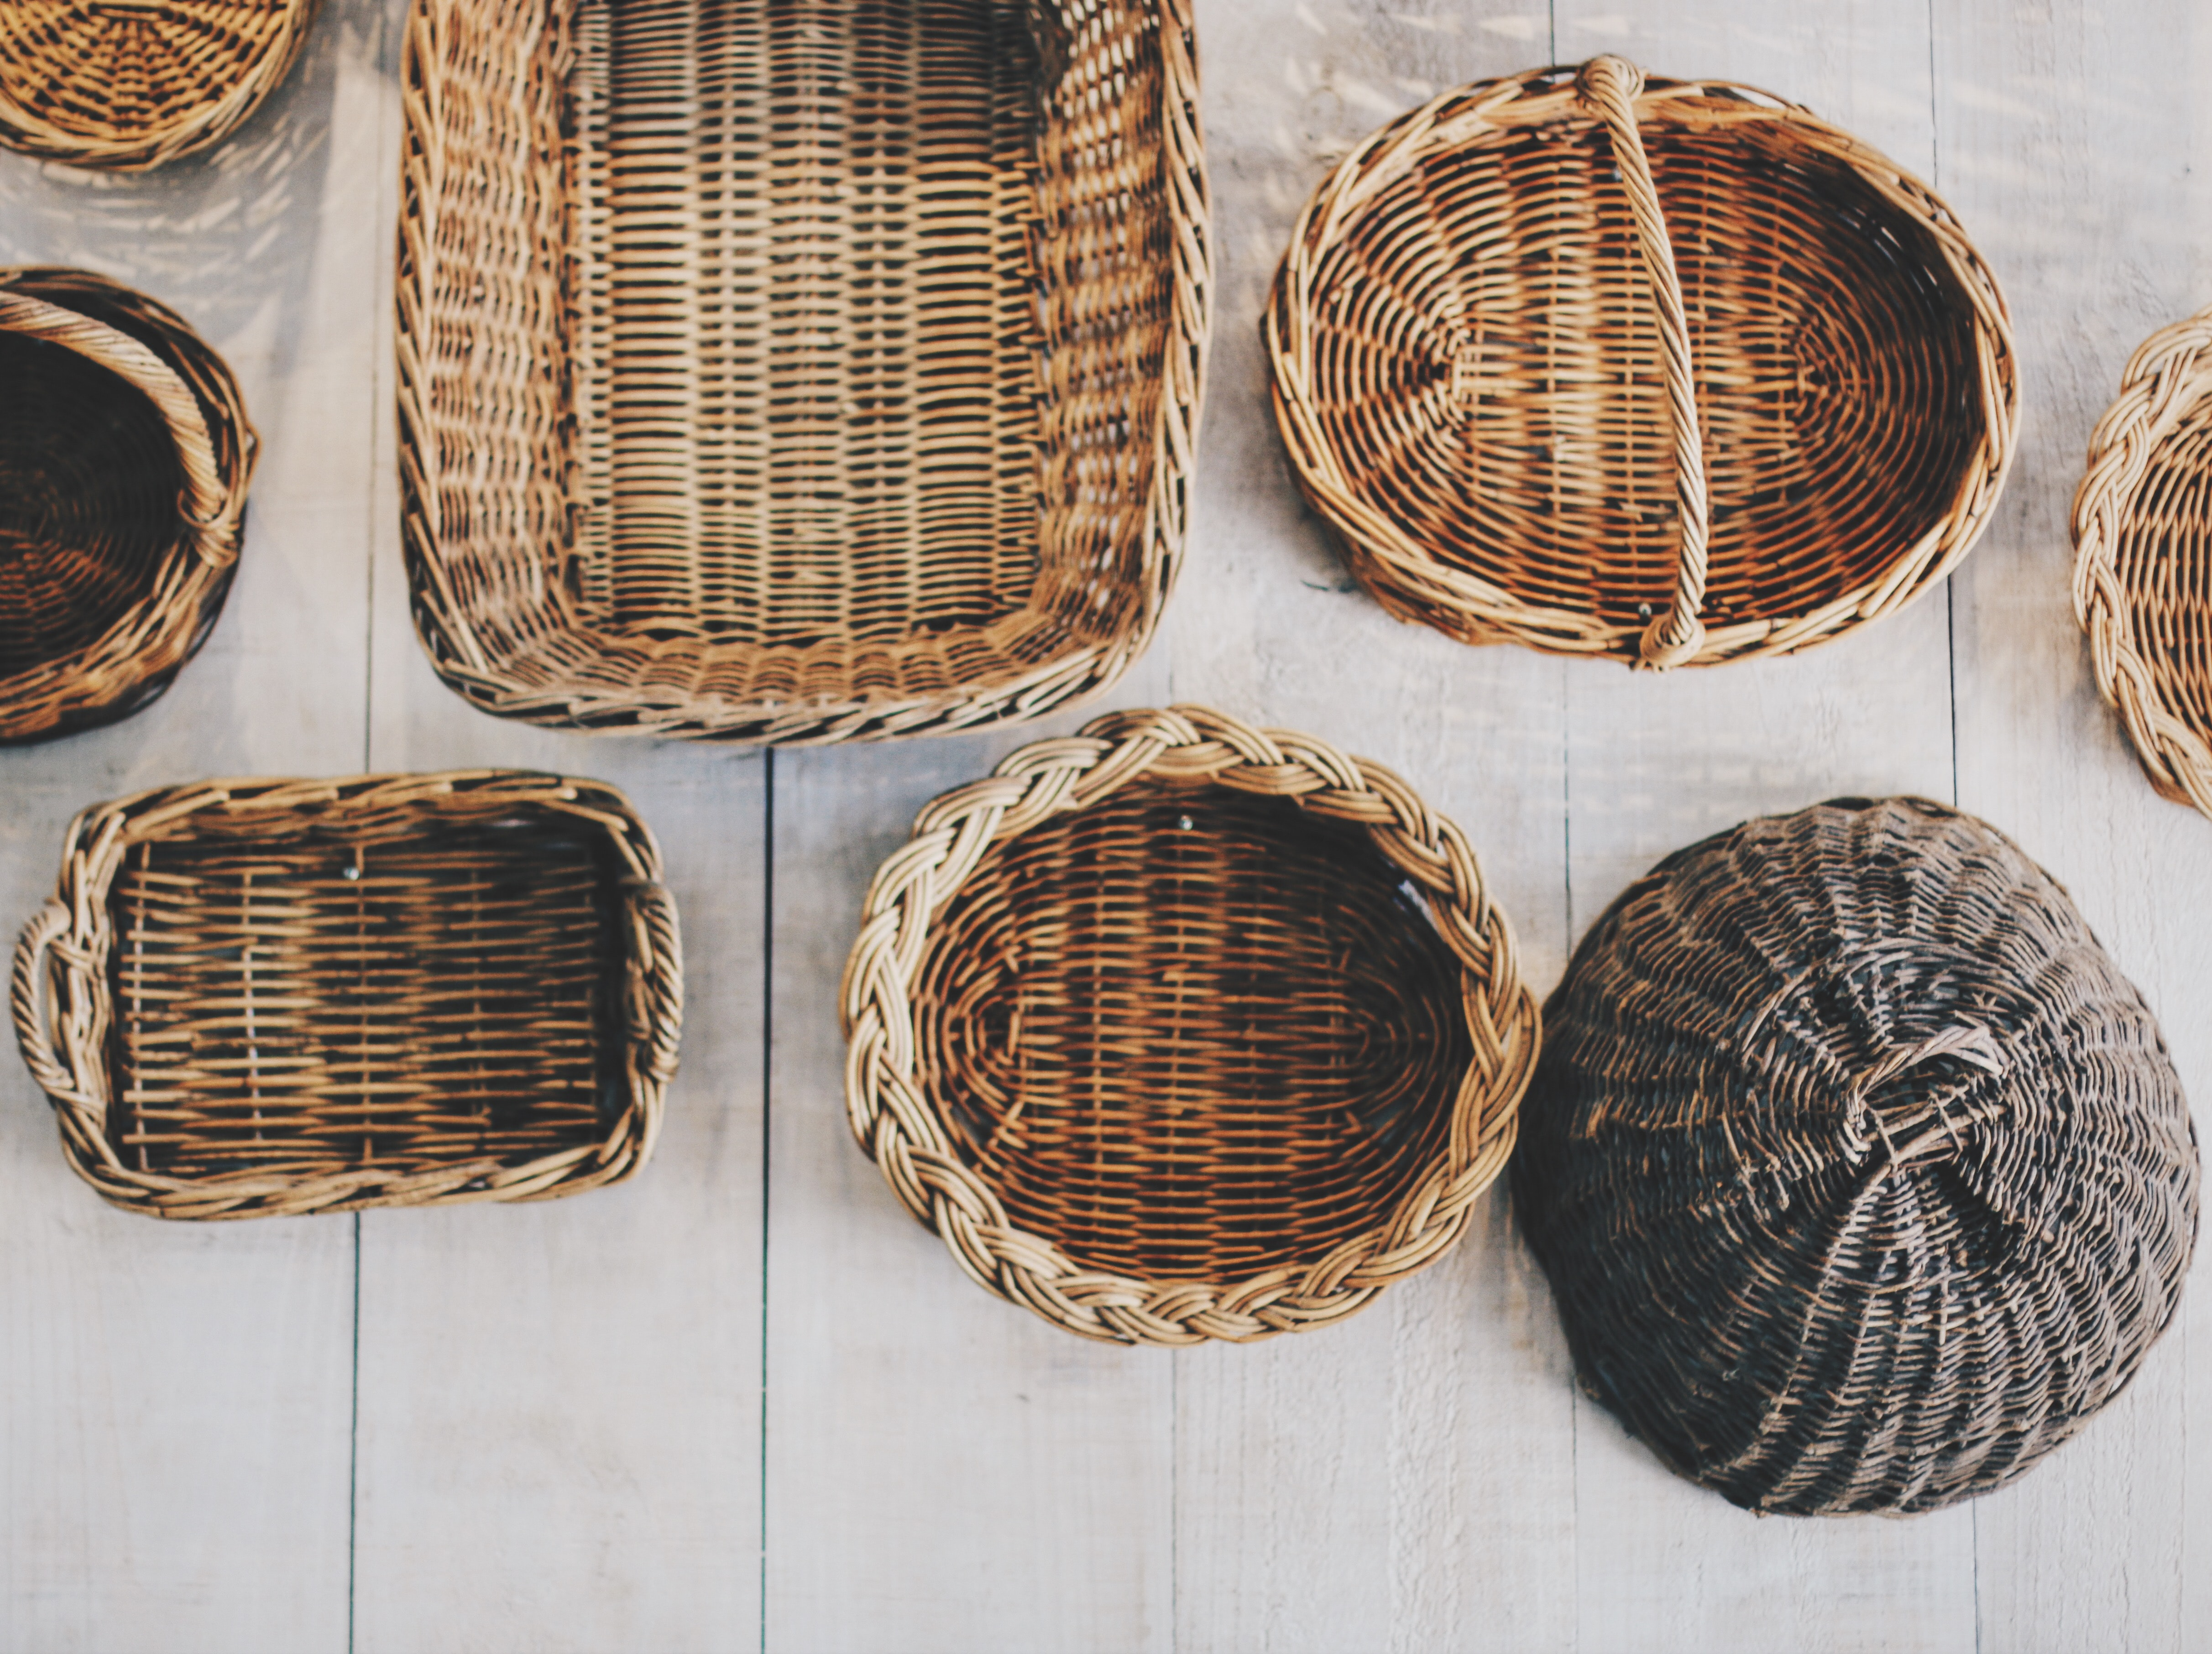 An overhead shot of wicker baskets in various sizes and shapes